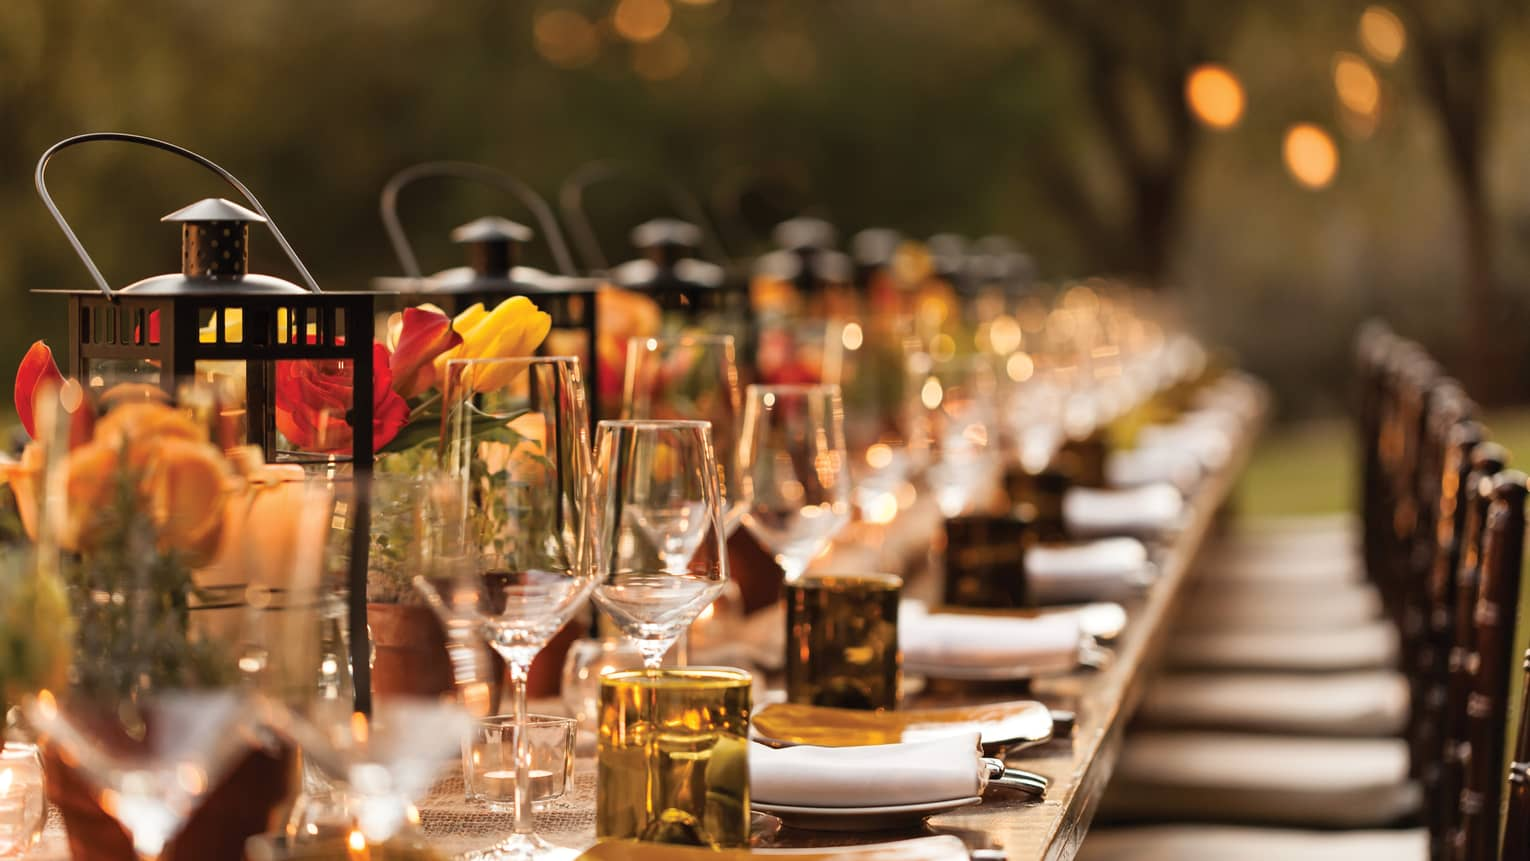 Close-up of long banquet table with red and yellow flower, amber glassware